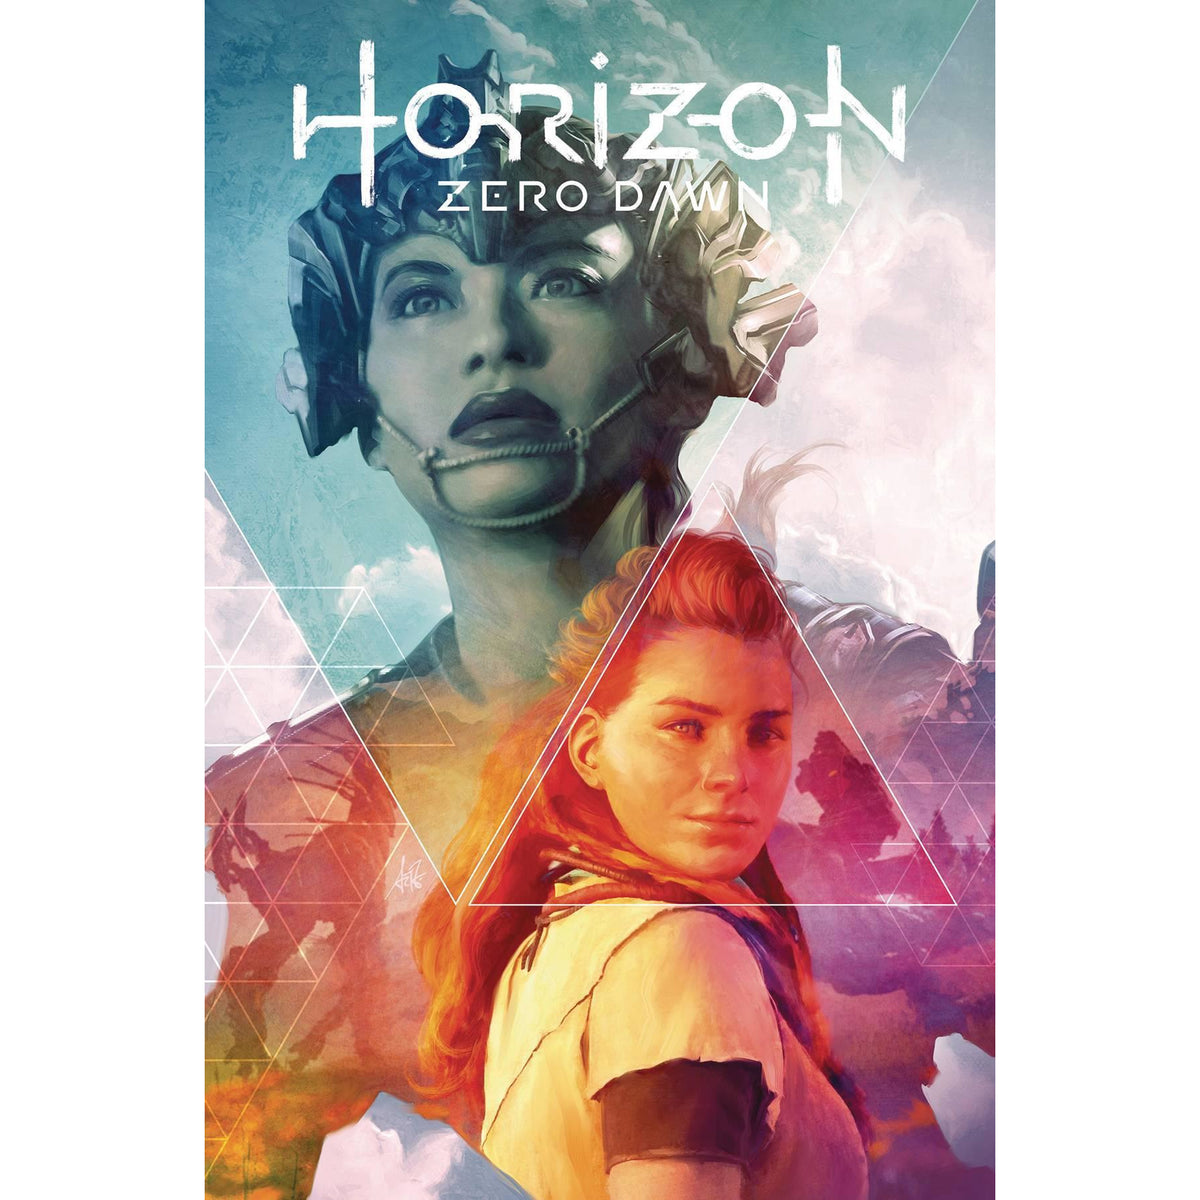 HORIZON ZERO DAWN #1 - ARTGERM COVER A